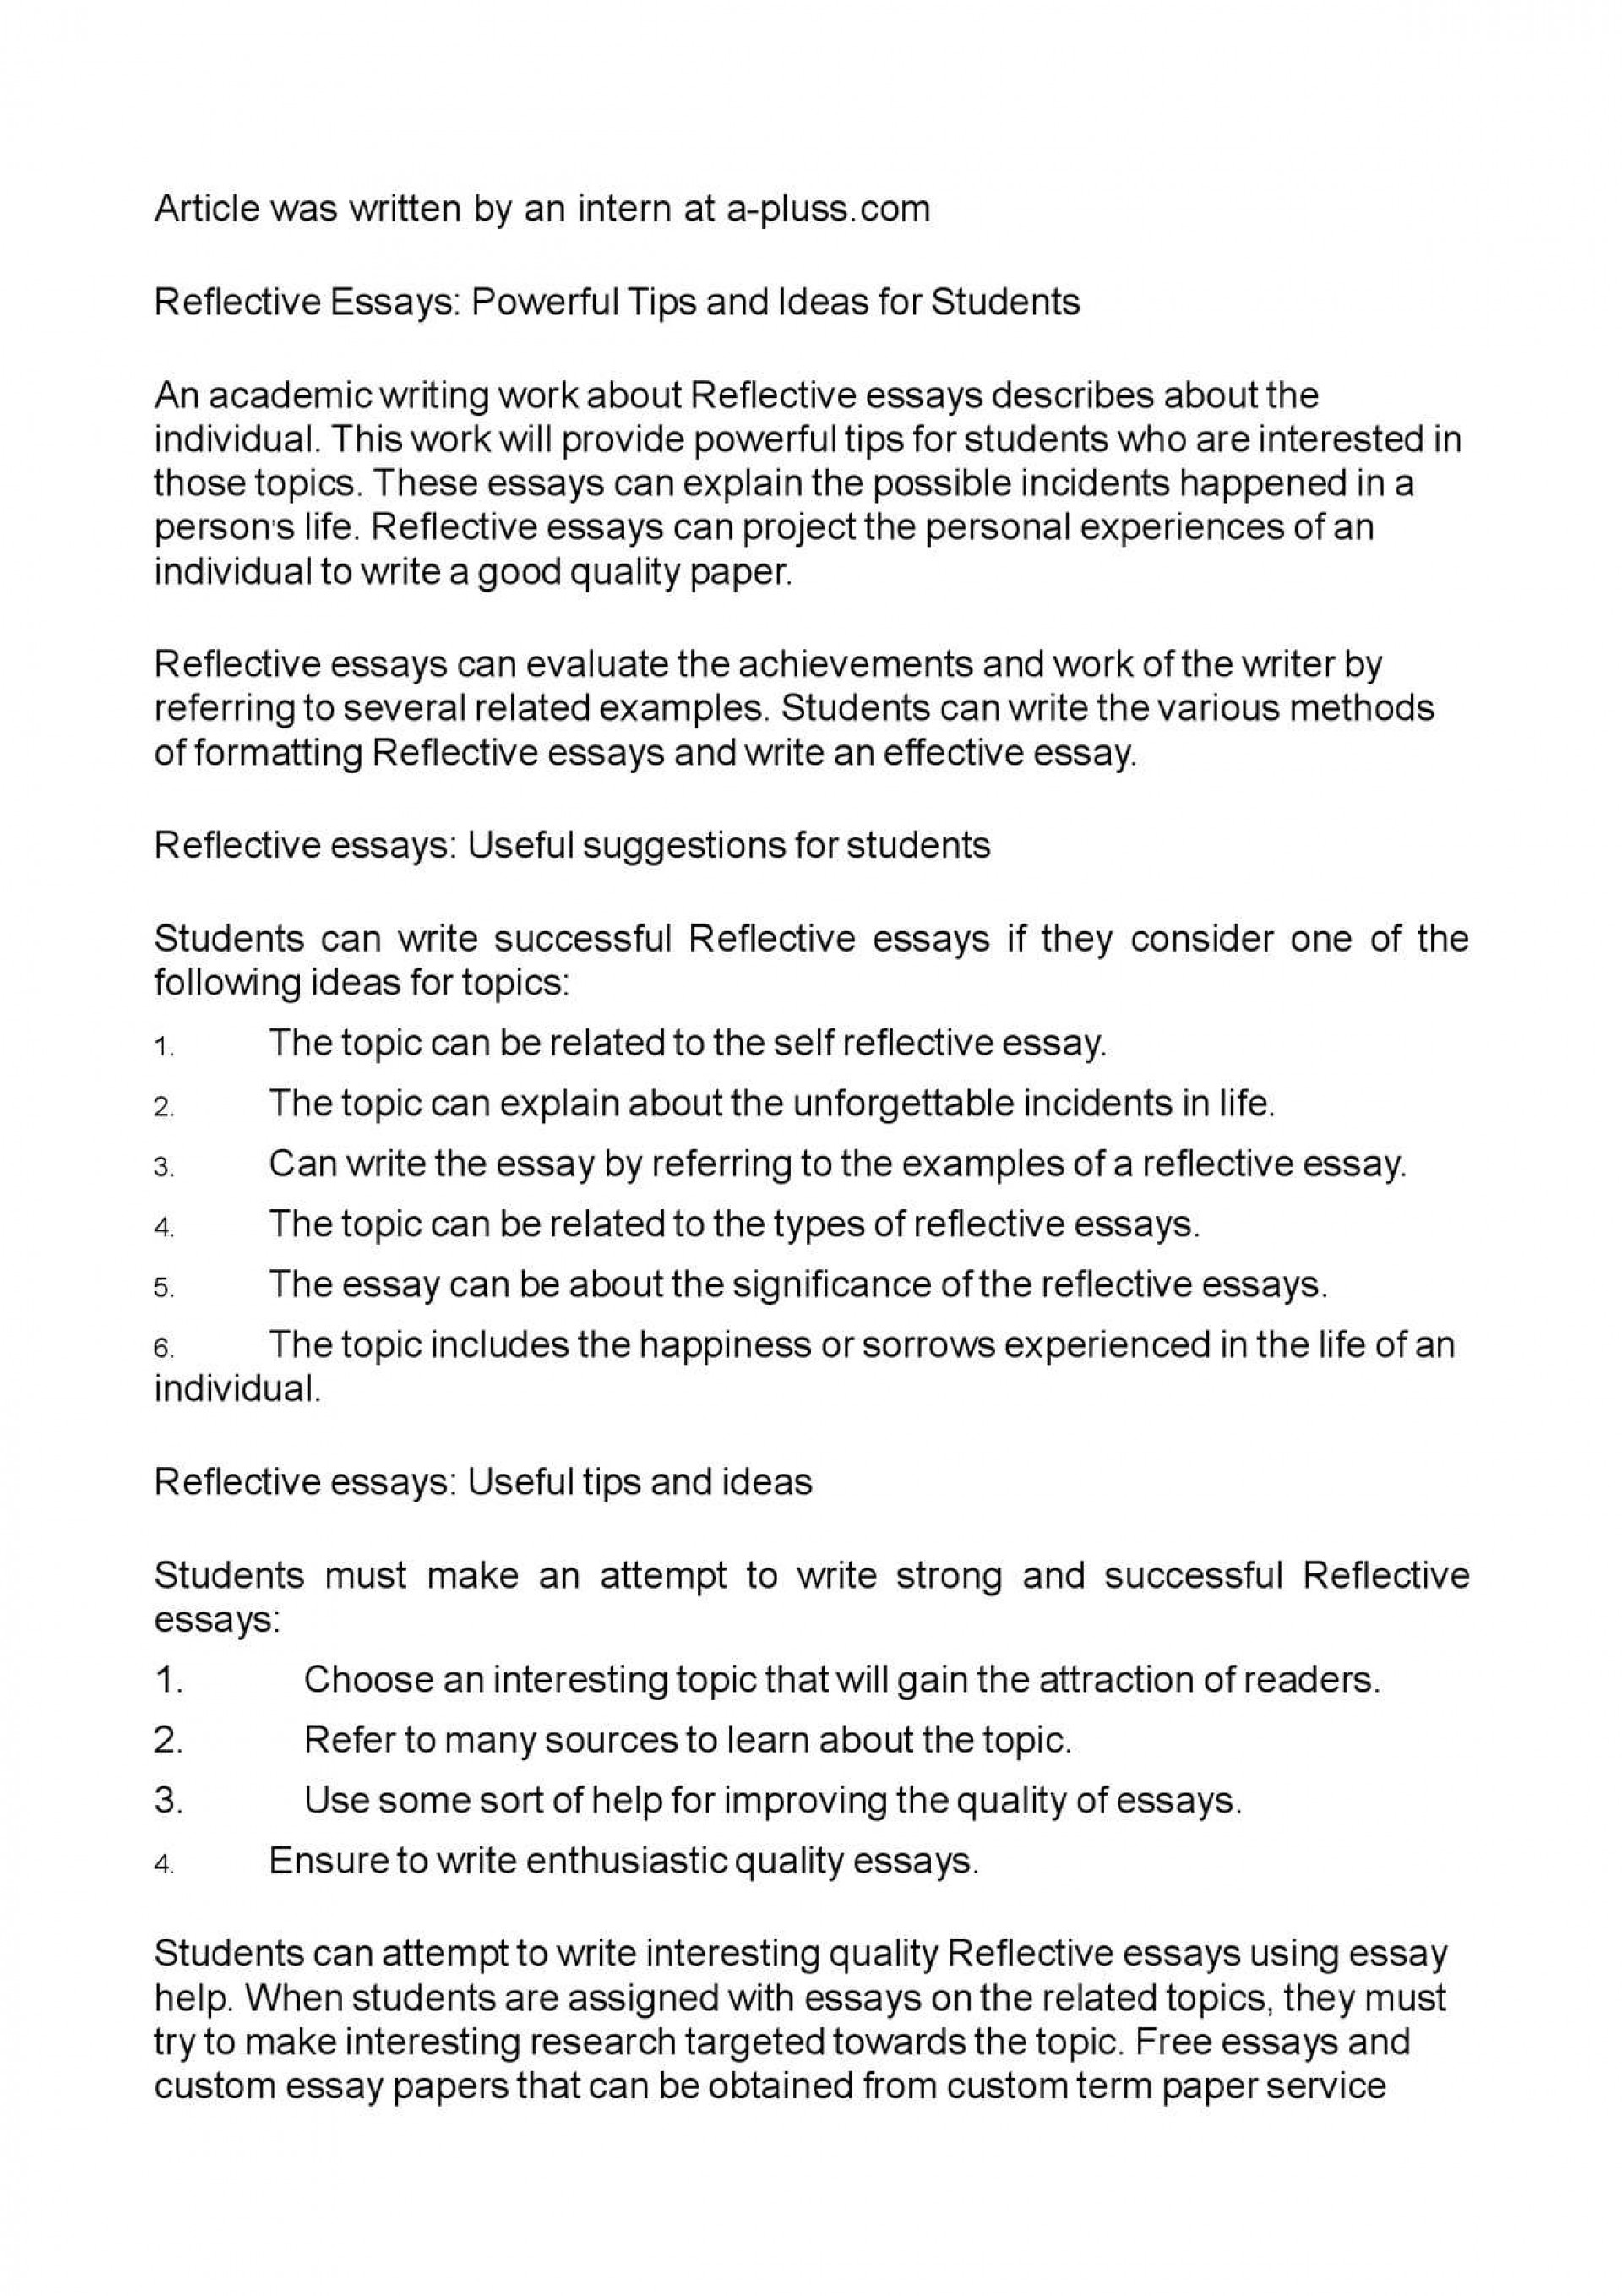 003 Reflective Essays Free National Honor Society Application Essay